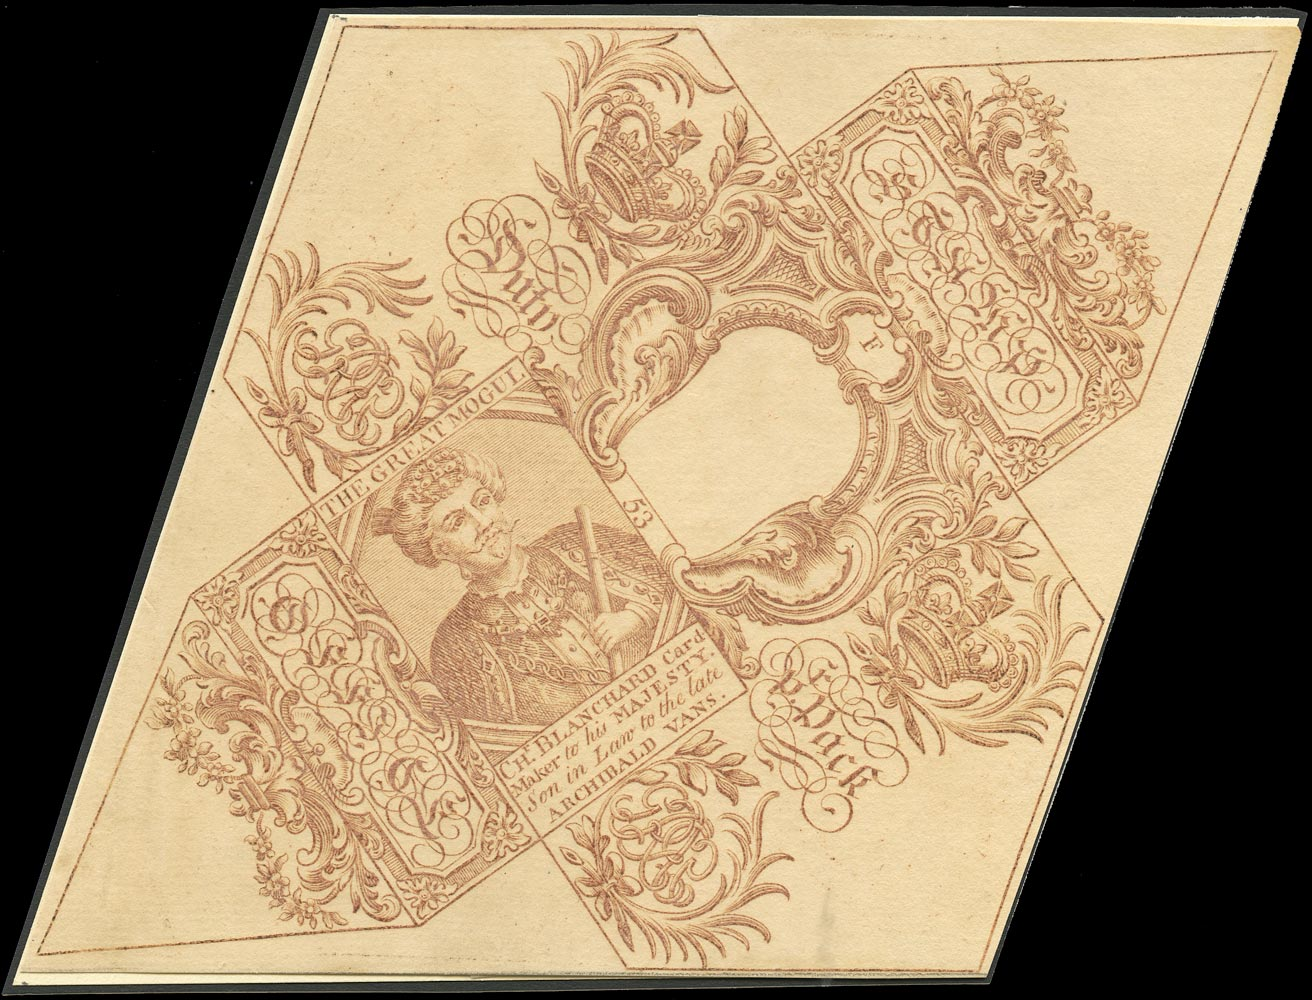 GB 1744 Revenue - Playing card wrapper 'The Great Mogul'